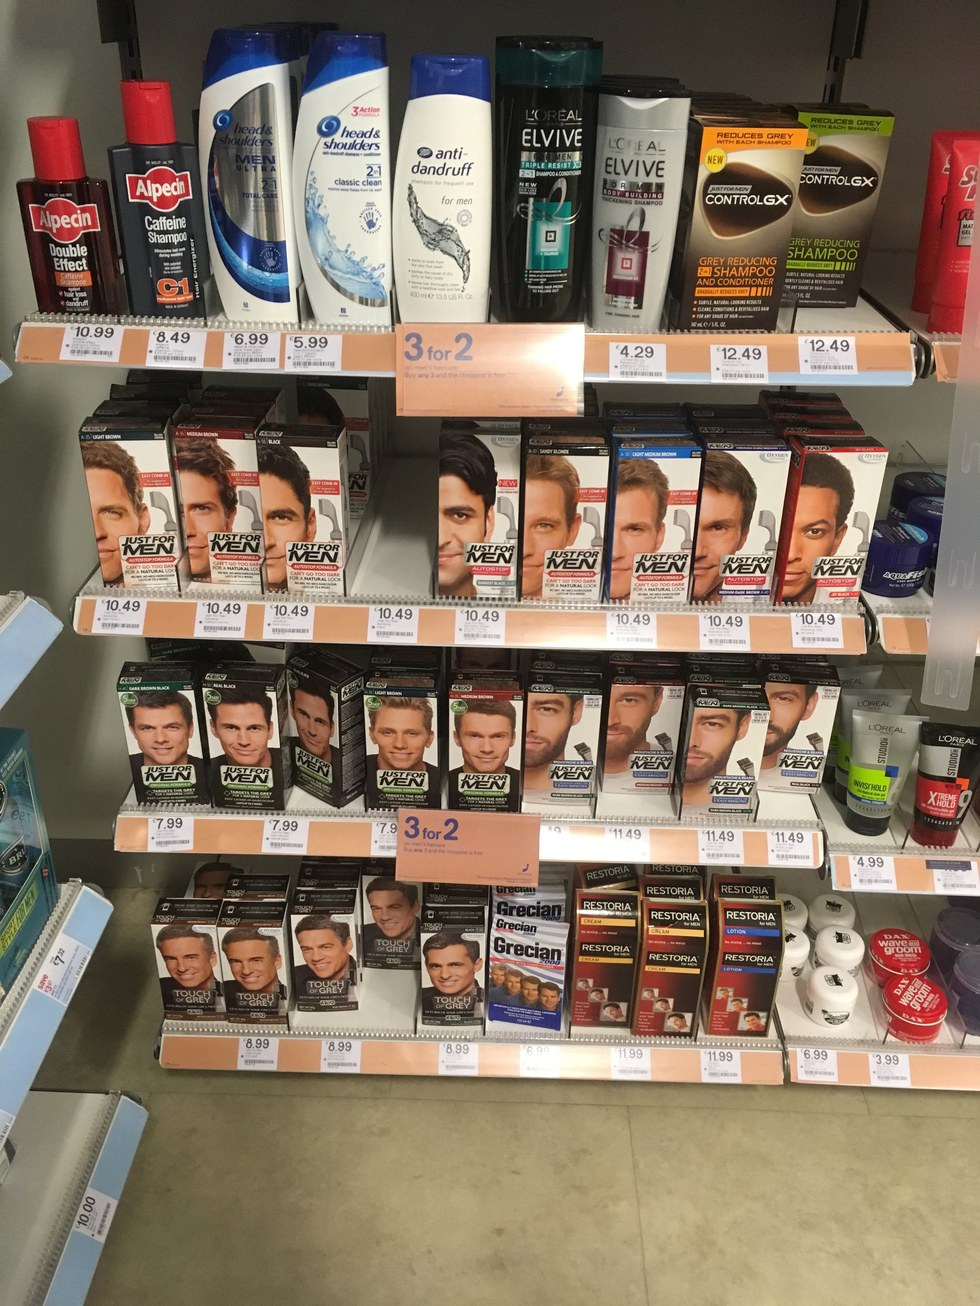 I want that products - I Understand That Maybe Men Don T Have Hair As Long As Women S So They Don T Want An Entire Box Of Hair Dye But Is Their Hair Really